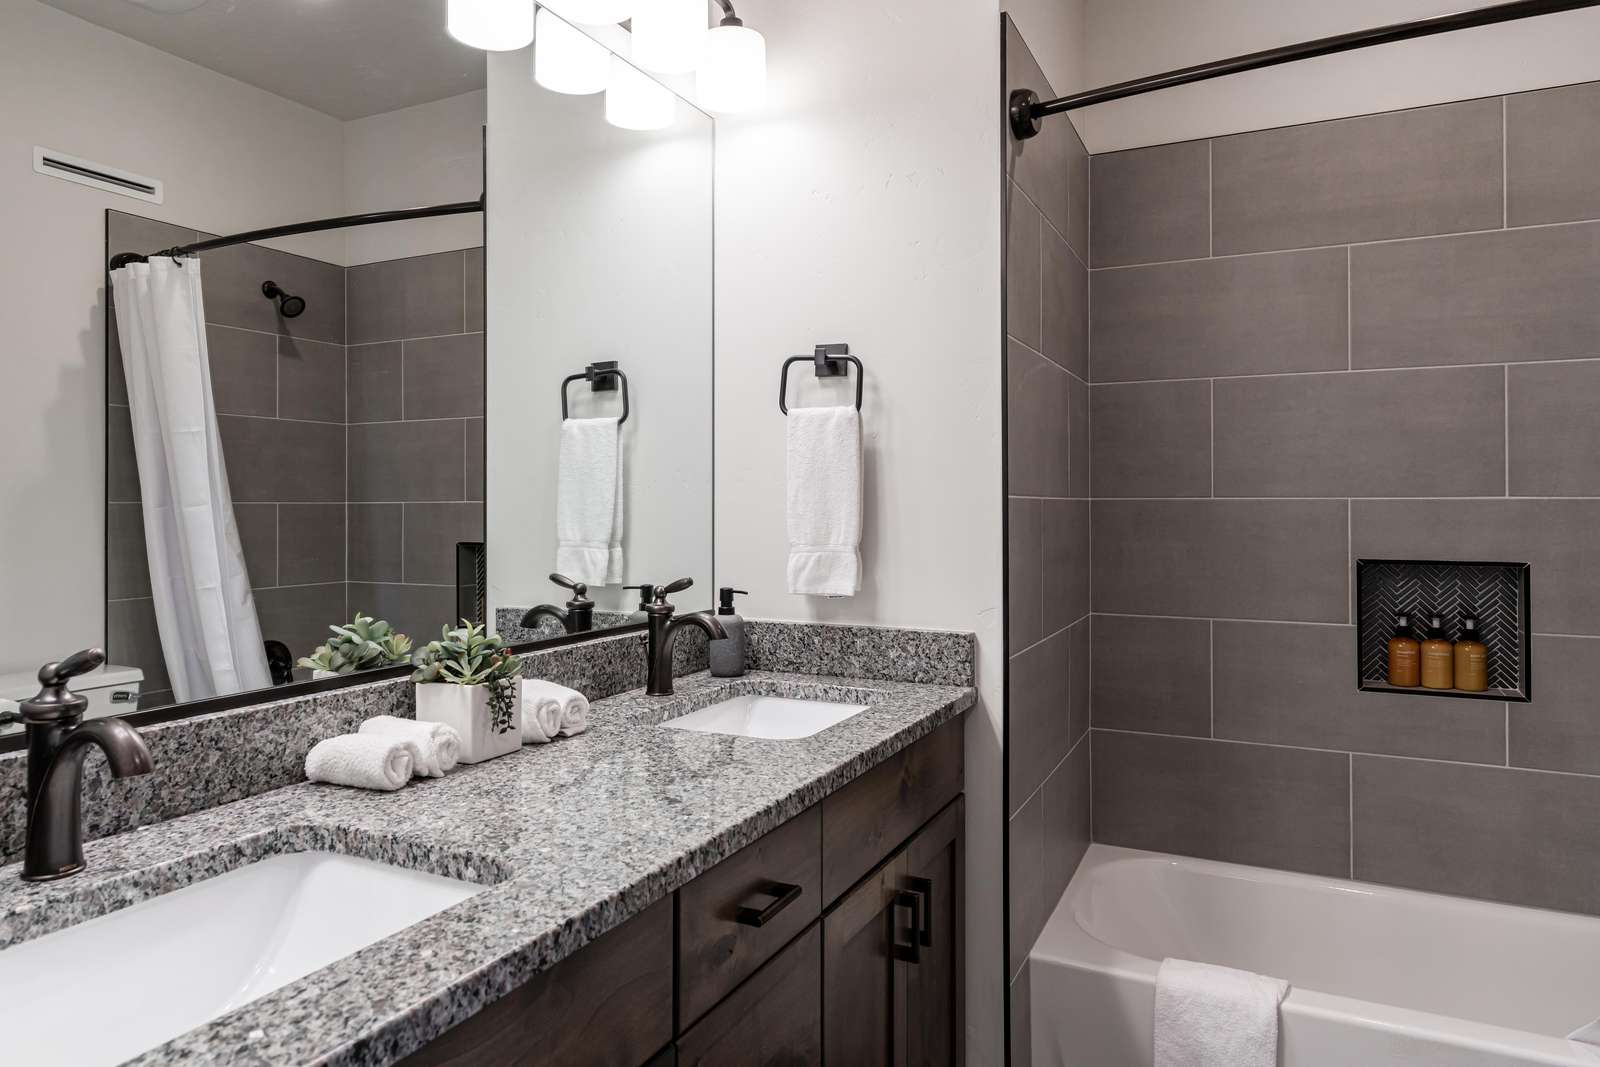 Jack & Jill upstairs bathroom - shared by Southwest bedroom and bunk bedroom